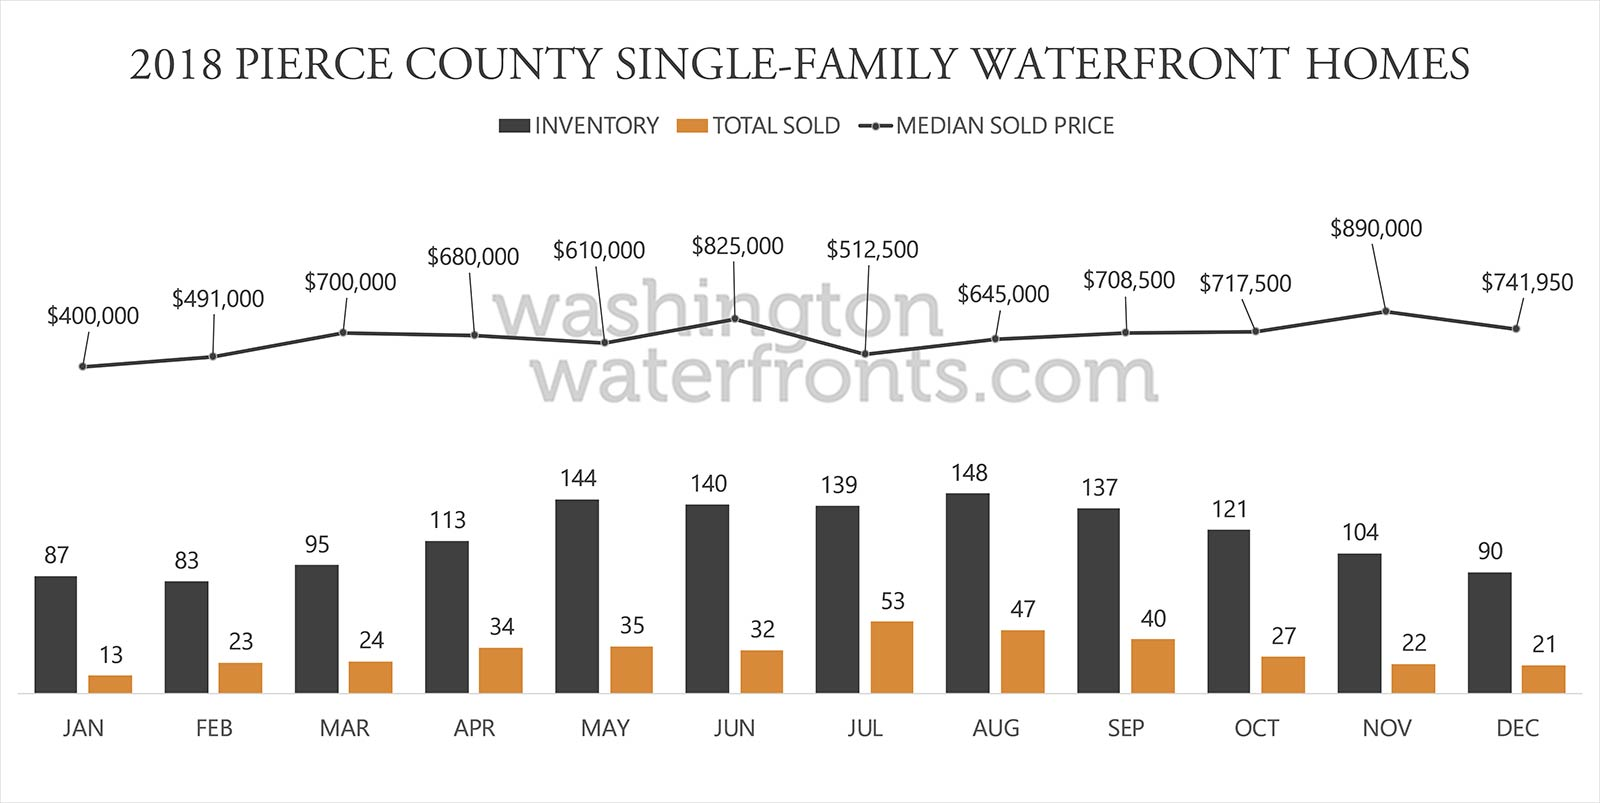 Pierce County Waterfront Inventory